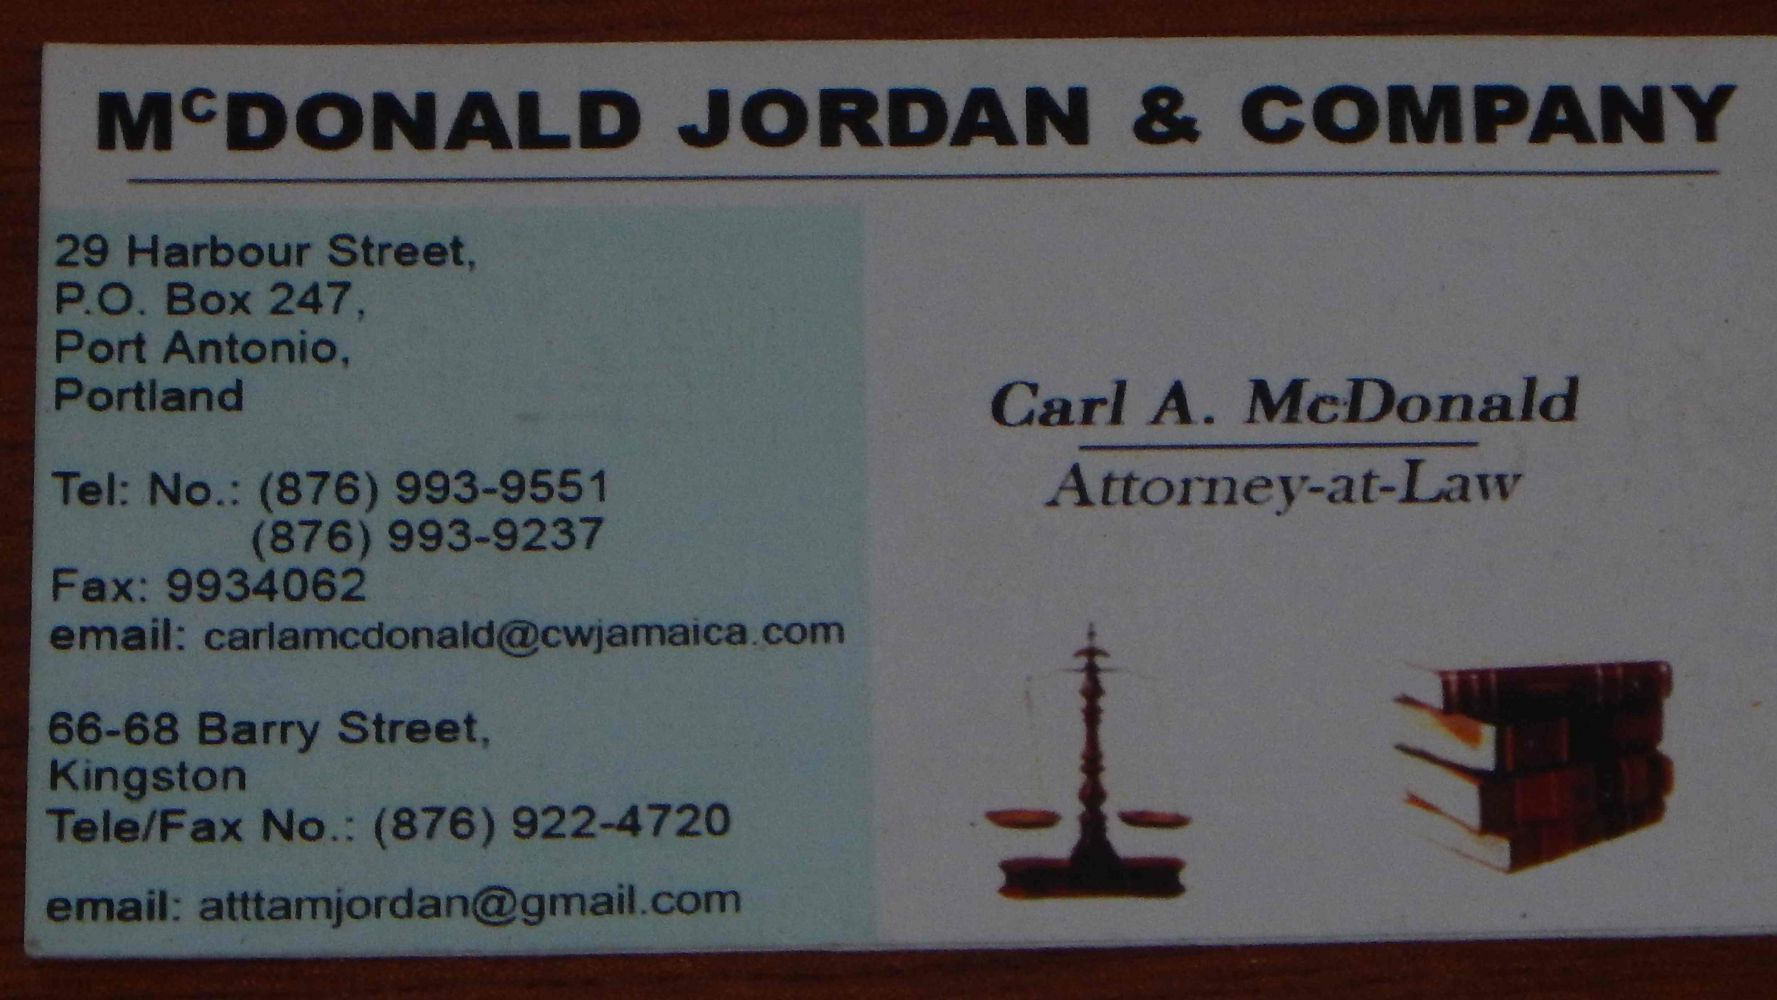 McDonald, Jordan and Company, Attorneys at Law Port Antonio Portland Jamaica